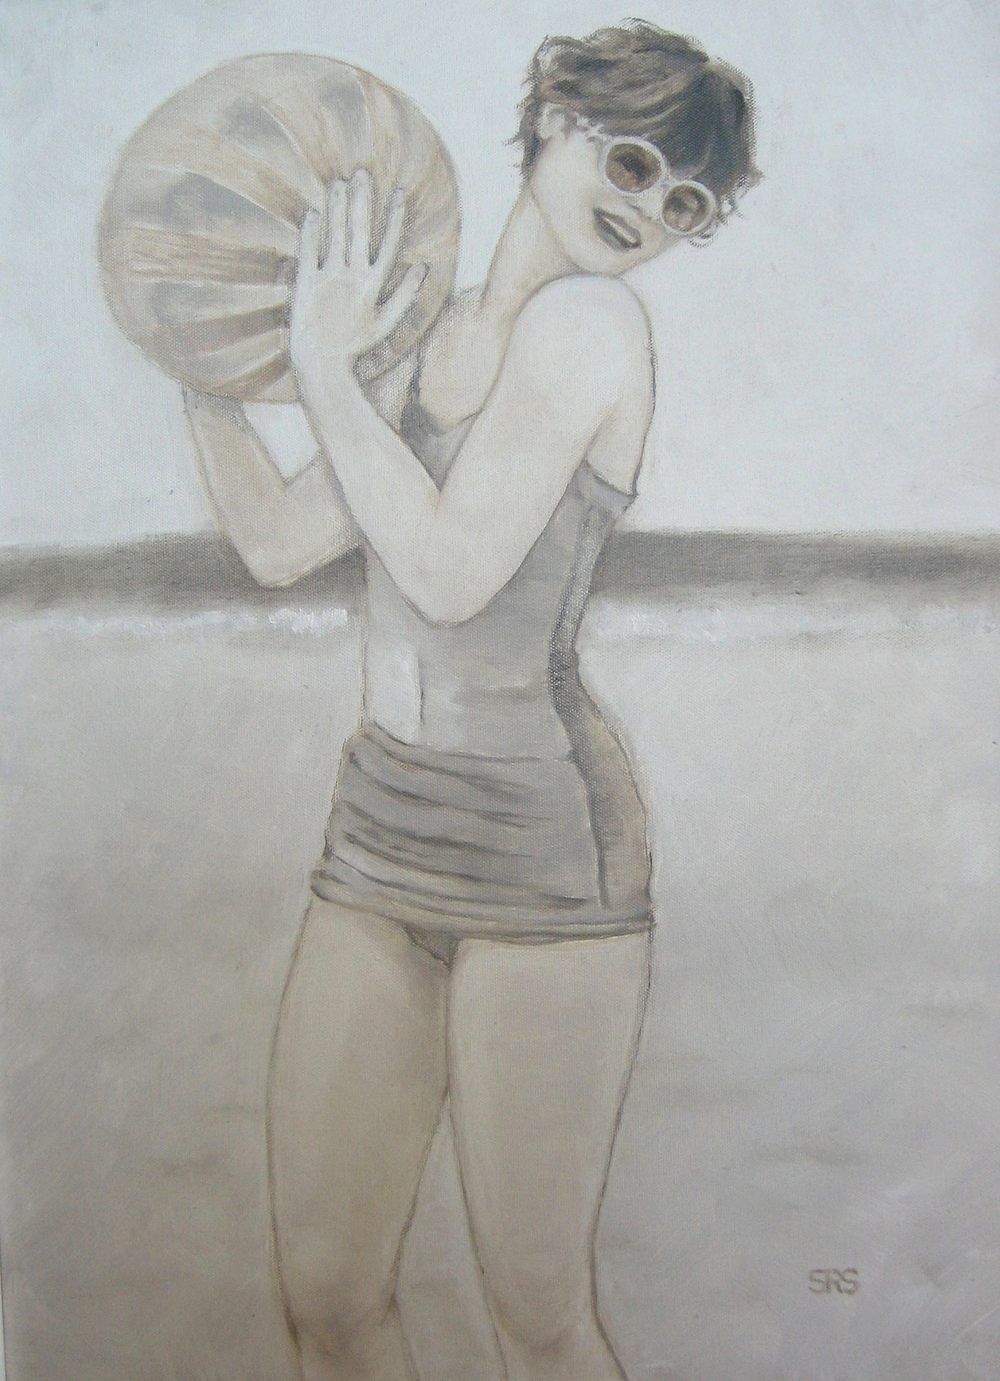 Beach Ball Girl, 2015